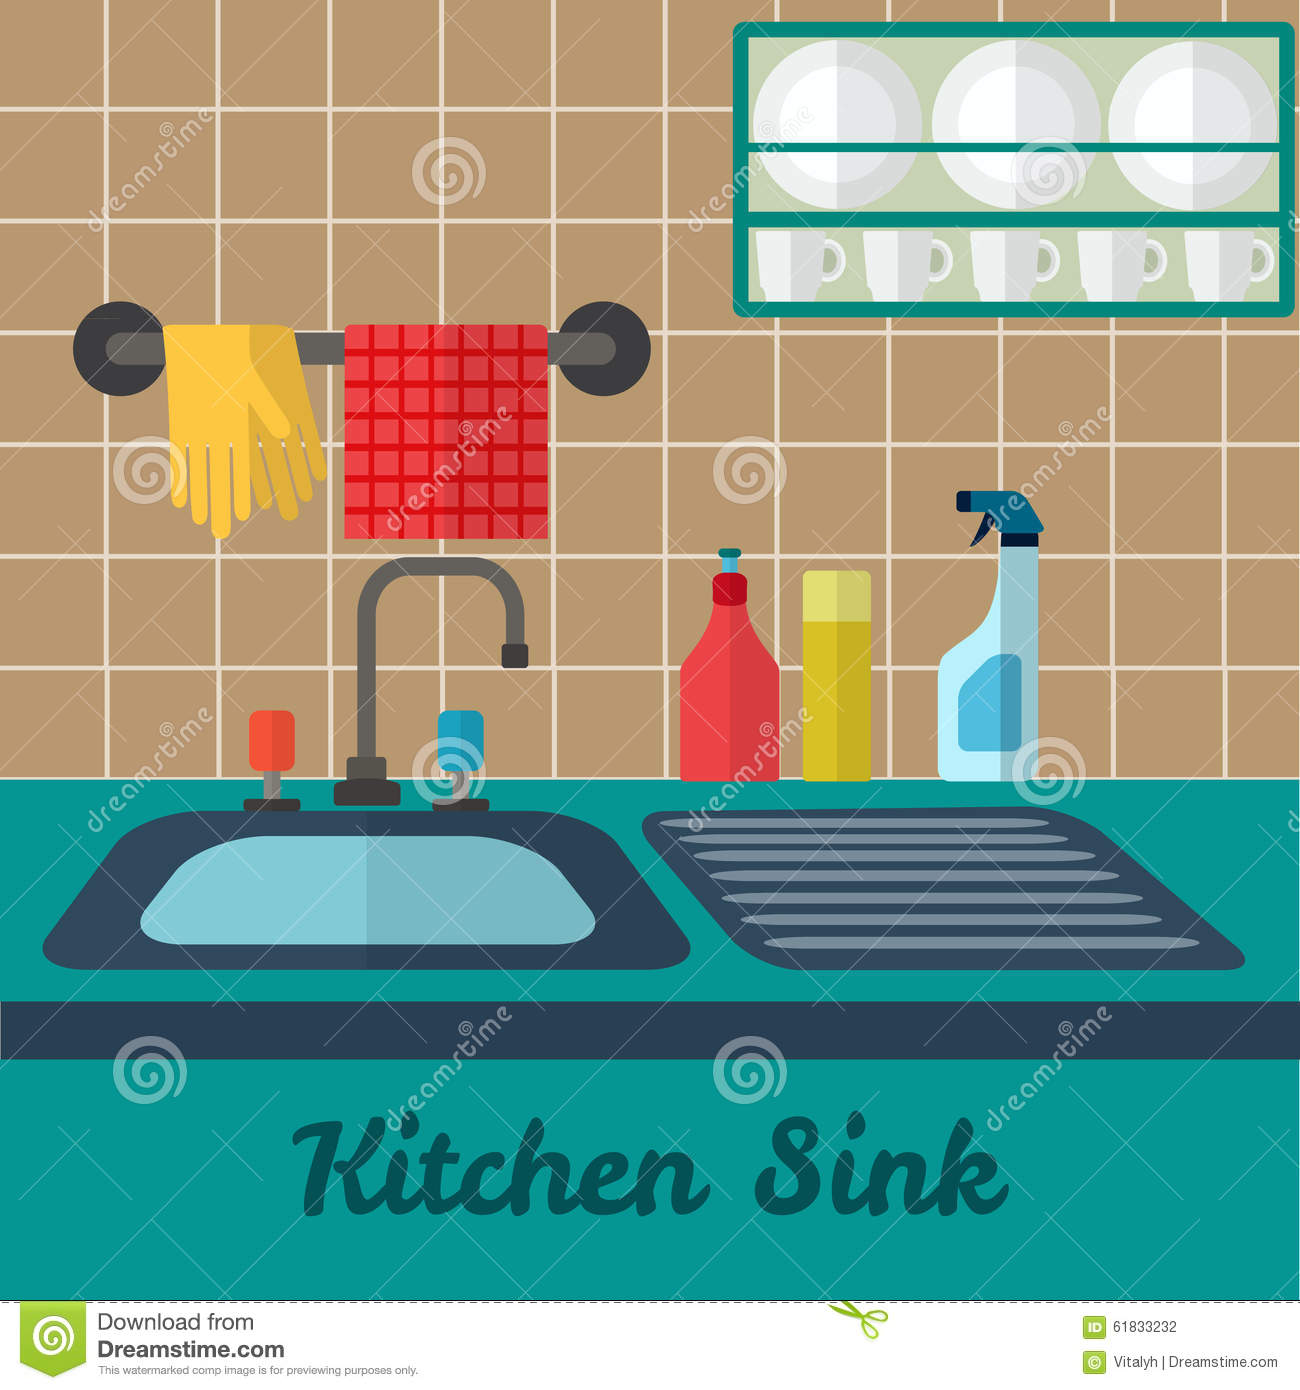 kitchen sink download vector kitchen sink stock vector illustration of graphic 2678